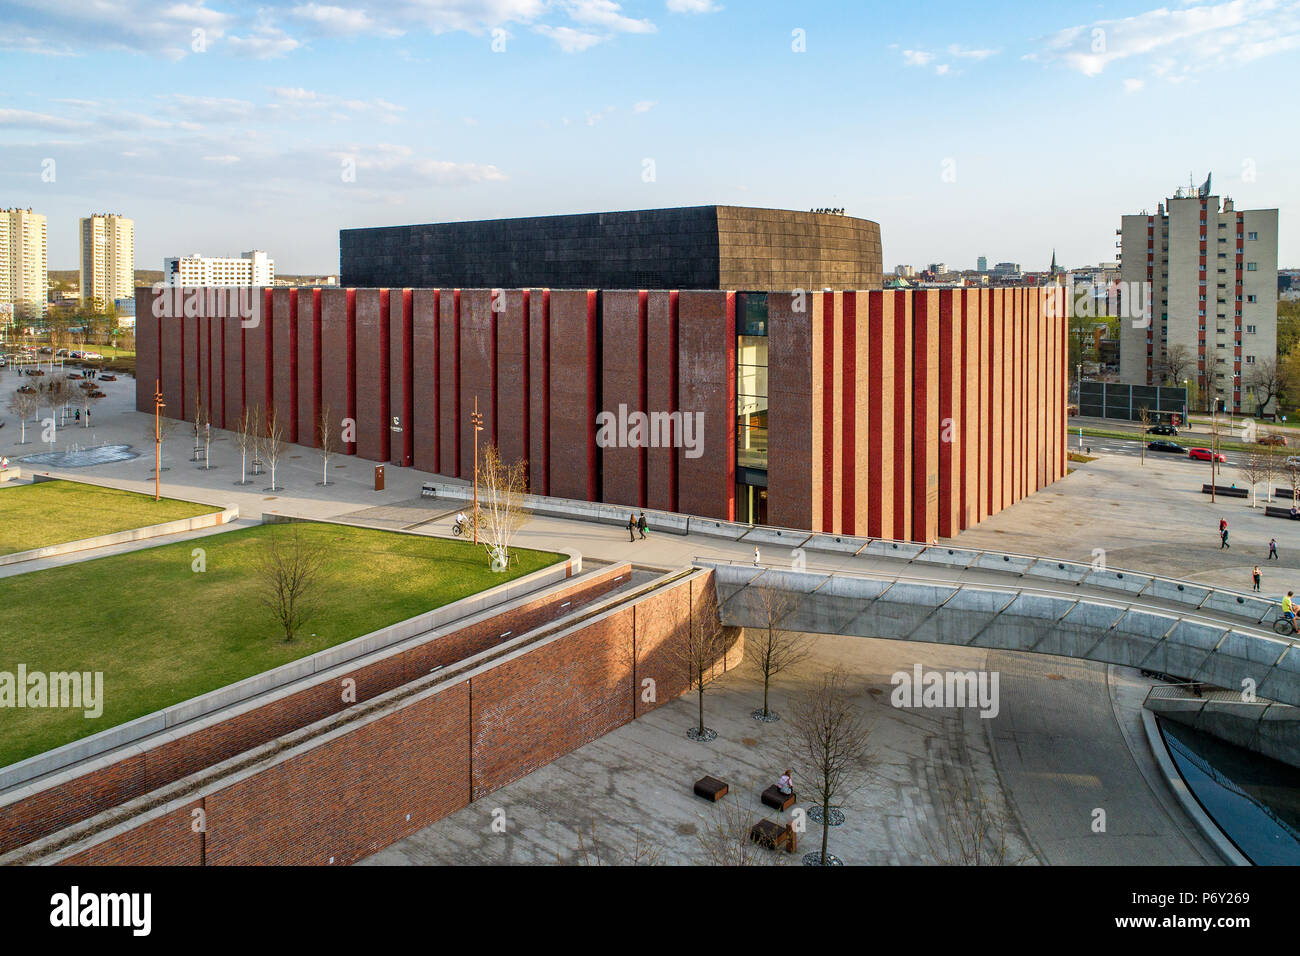 Katowice, Poland - April 12, 2018: Modern concert hall of the National Symphonic Orchestra of Polish Radio (NOSPR) in Katowice, Poland. Aerial view. Stock Photo